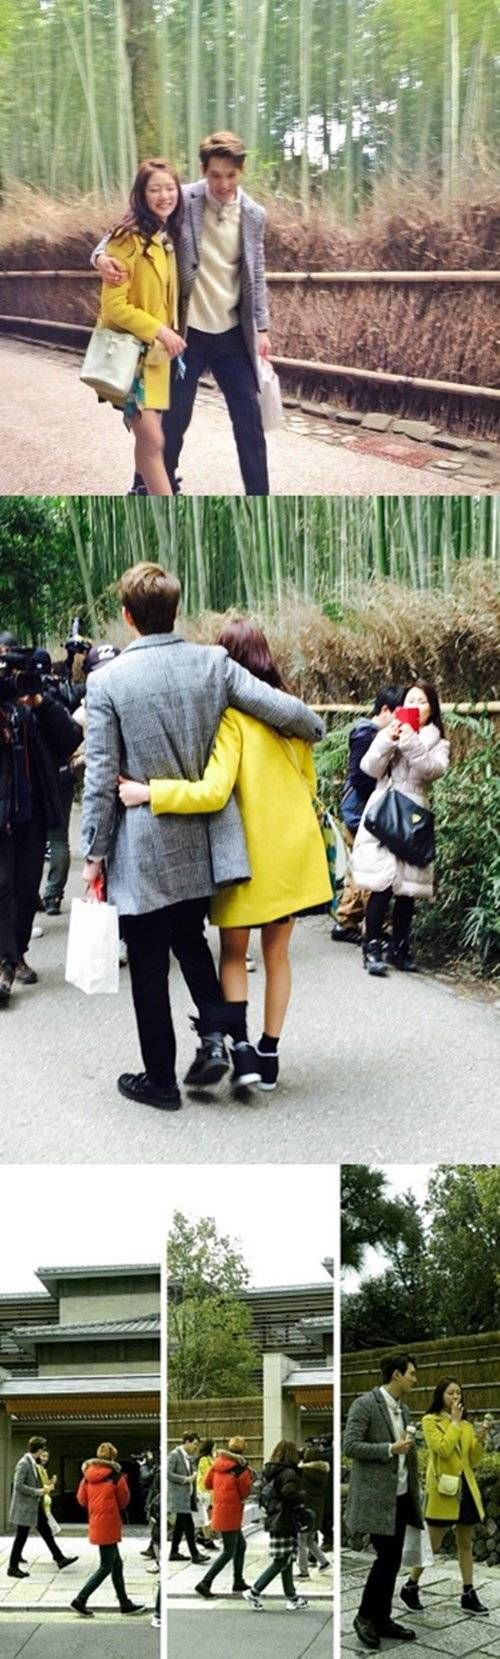 CNBLUE's Jonghyun and actress Gong Seung Yeon spotted on their Japan date for 'We Got Married'   http://www.allkpop.com/article/2015/03/cnblues-jonghyun-and-actress-gong-seung-yeon-spotted-on-their-japan-date-for-we-got-married